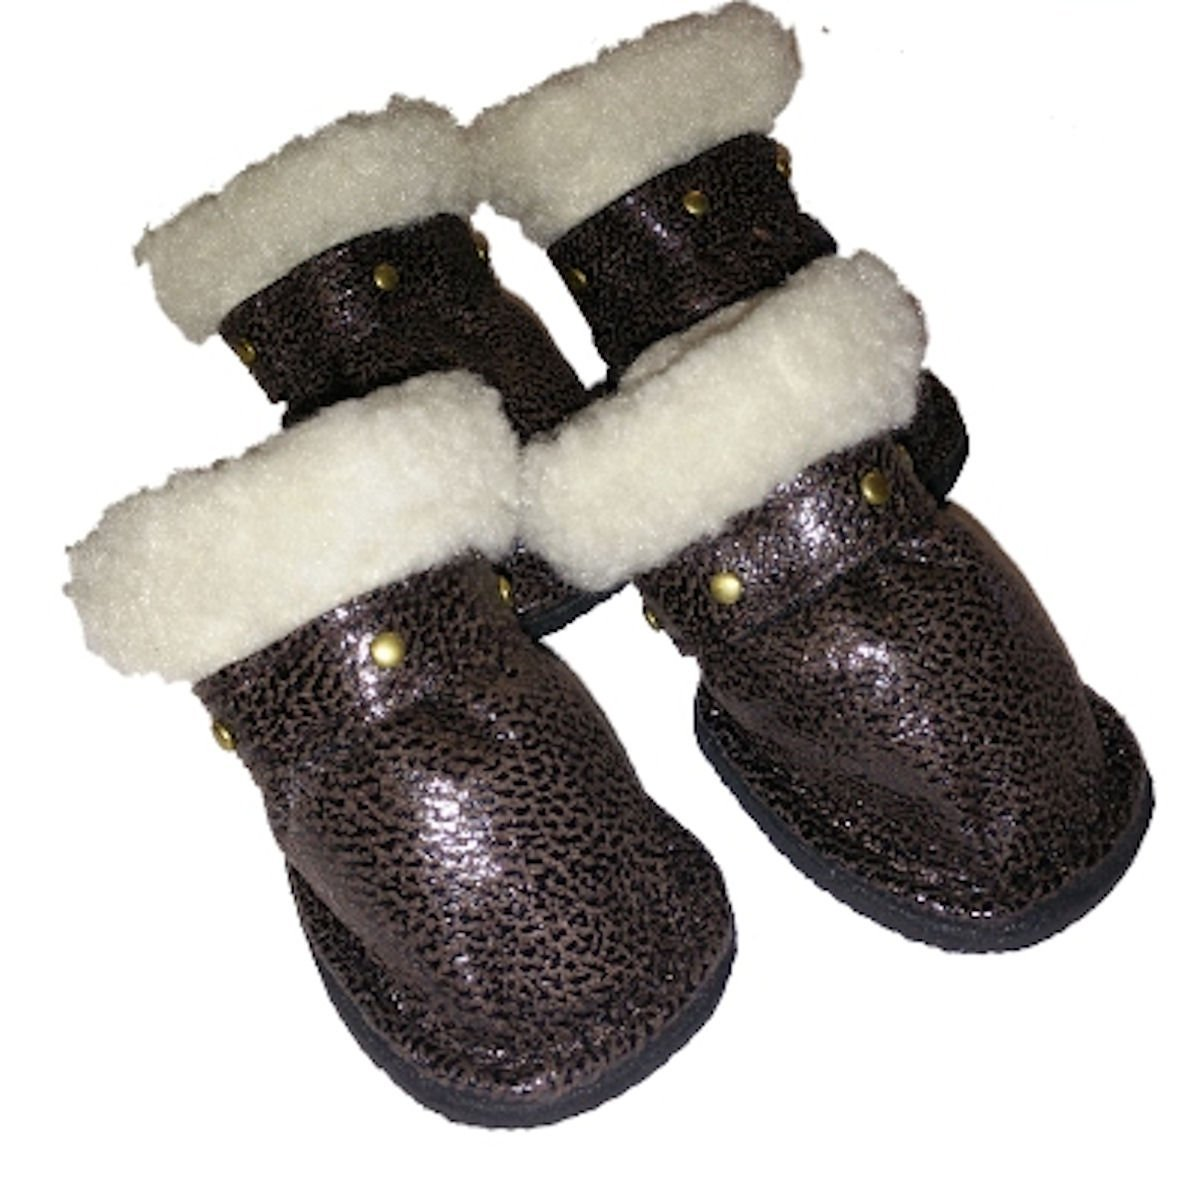 SimplyDog Brown Stud Faux Leather Dog Booties (M/L)